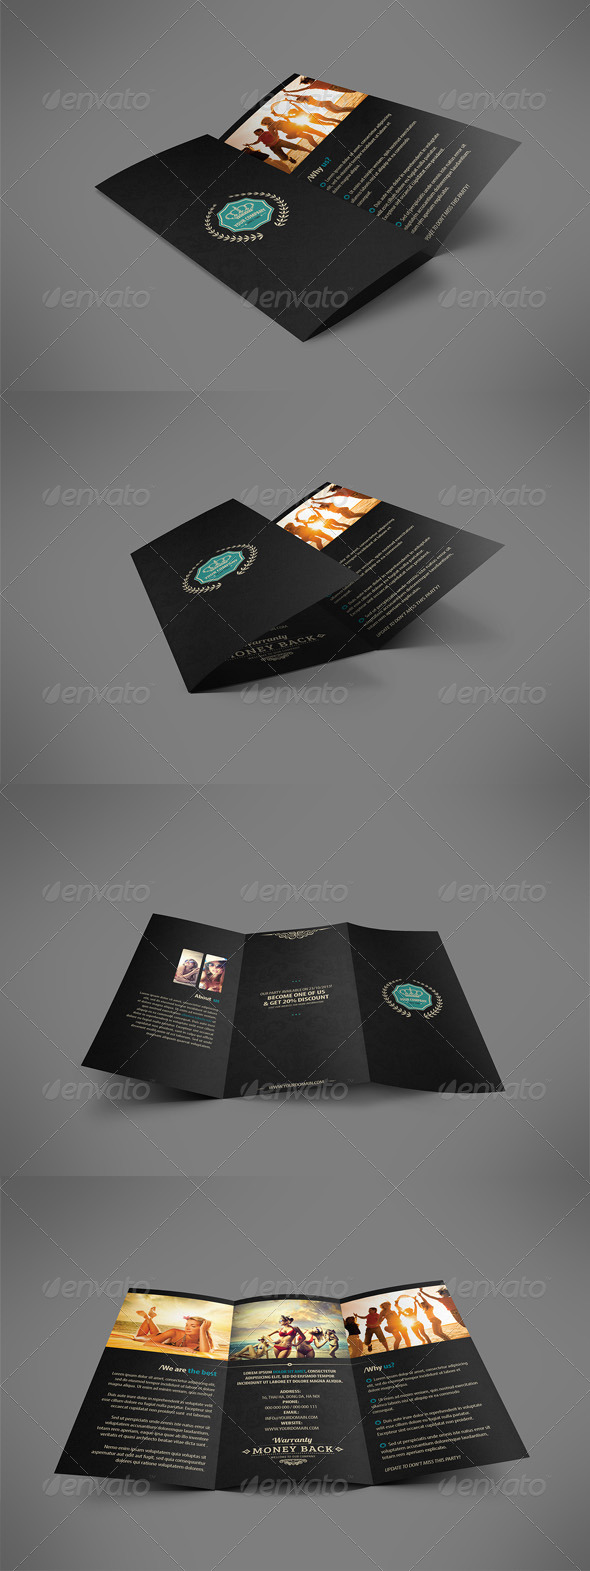 GraphicRiver Luxury Retro Brochure Tri-fold 4118977